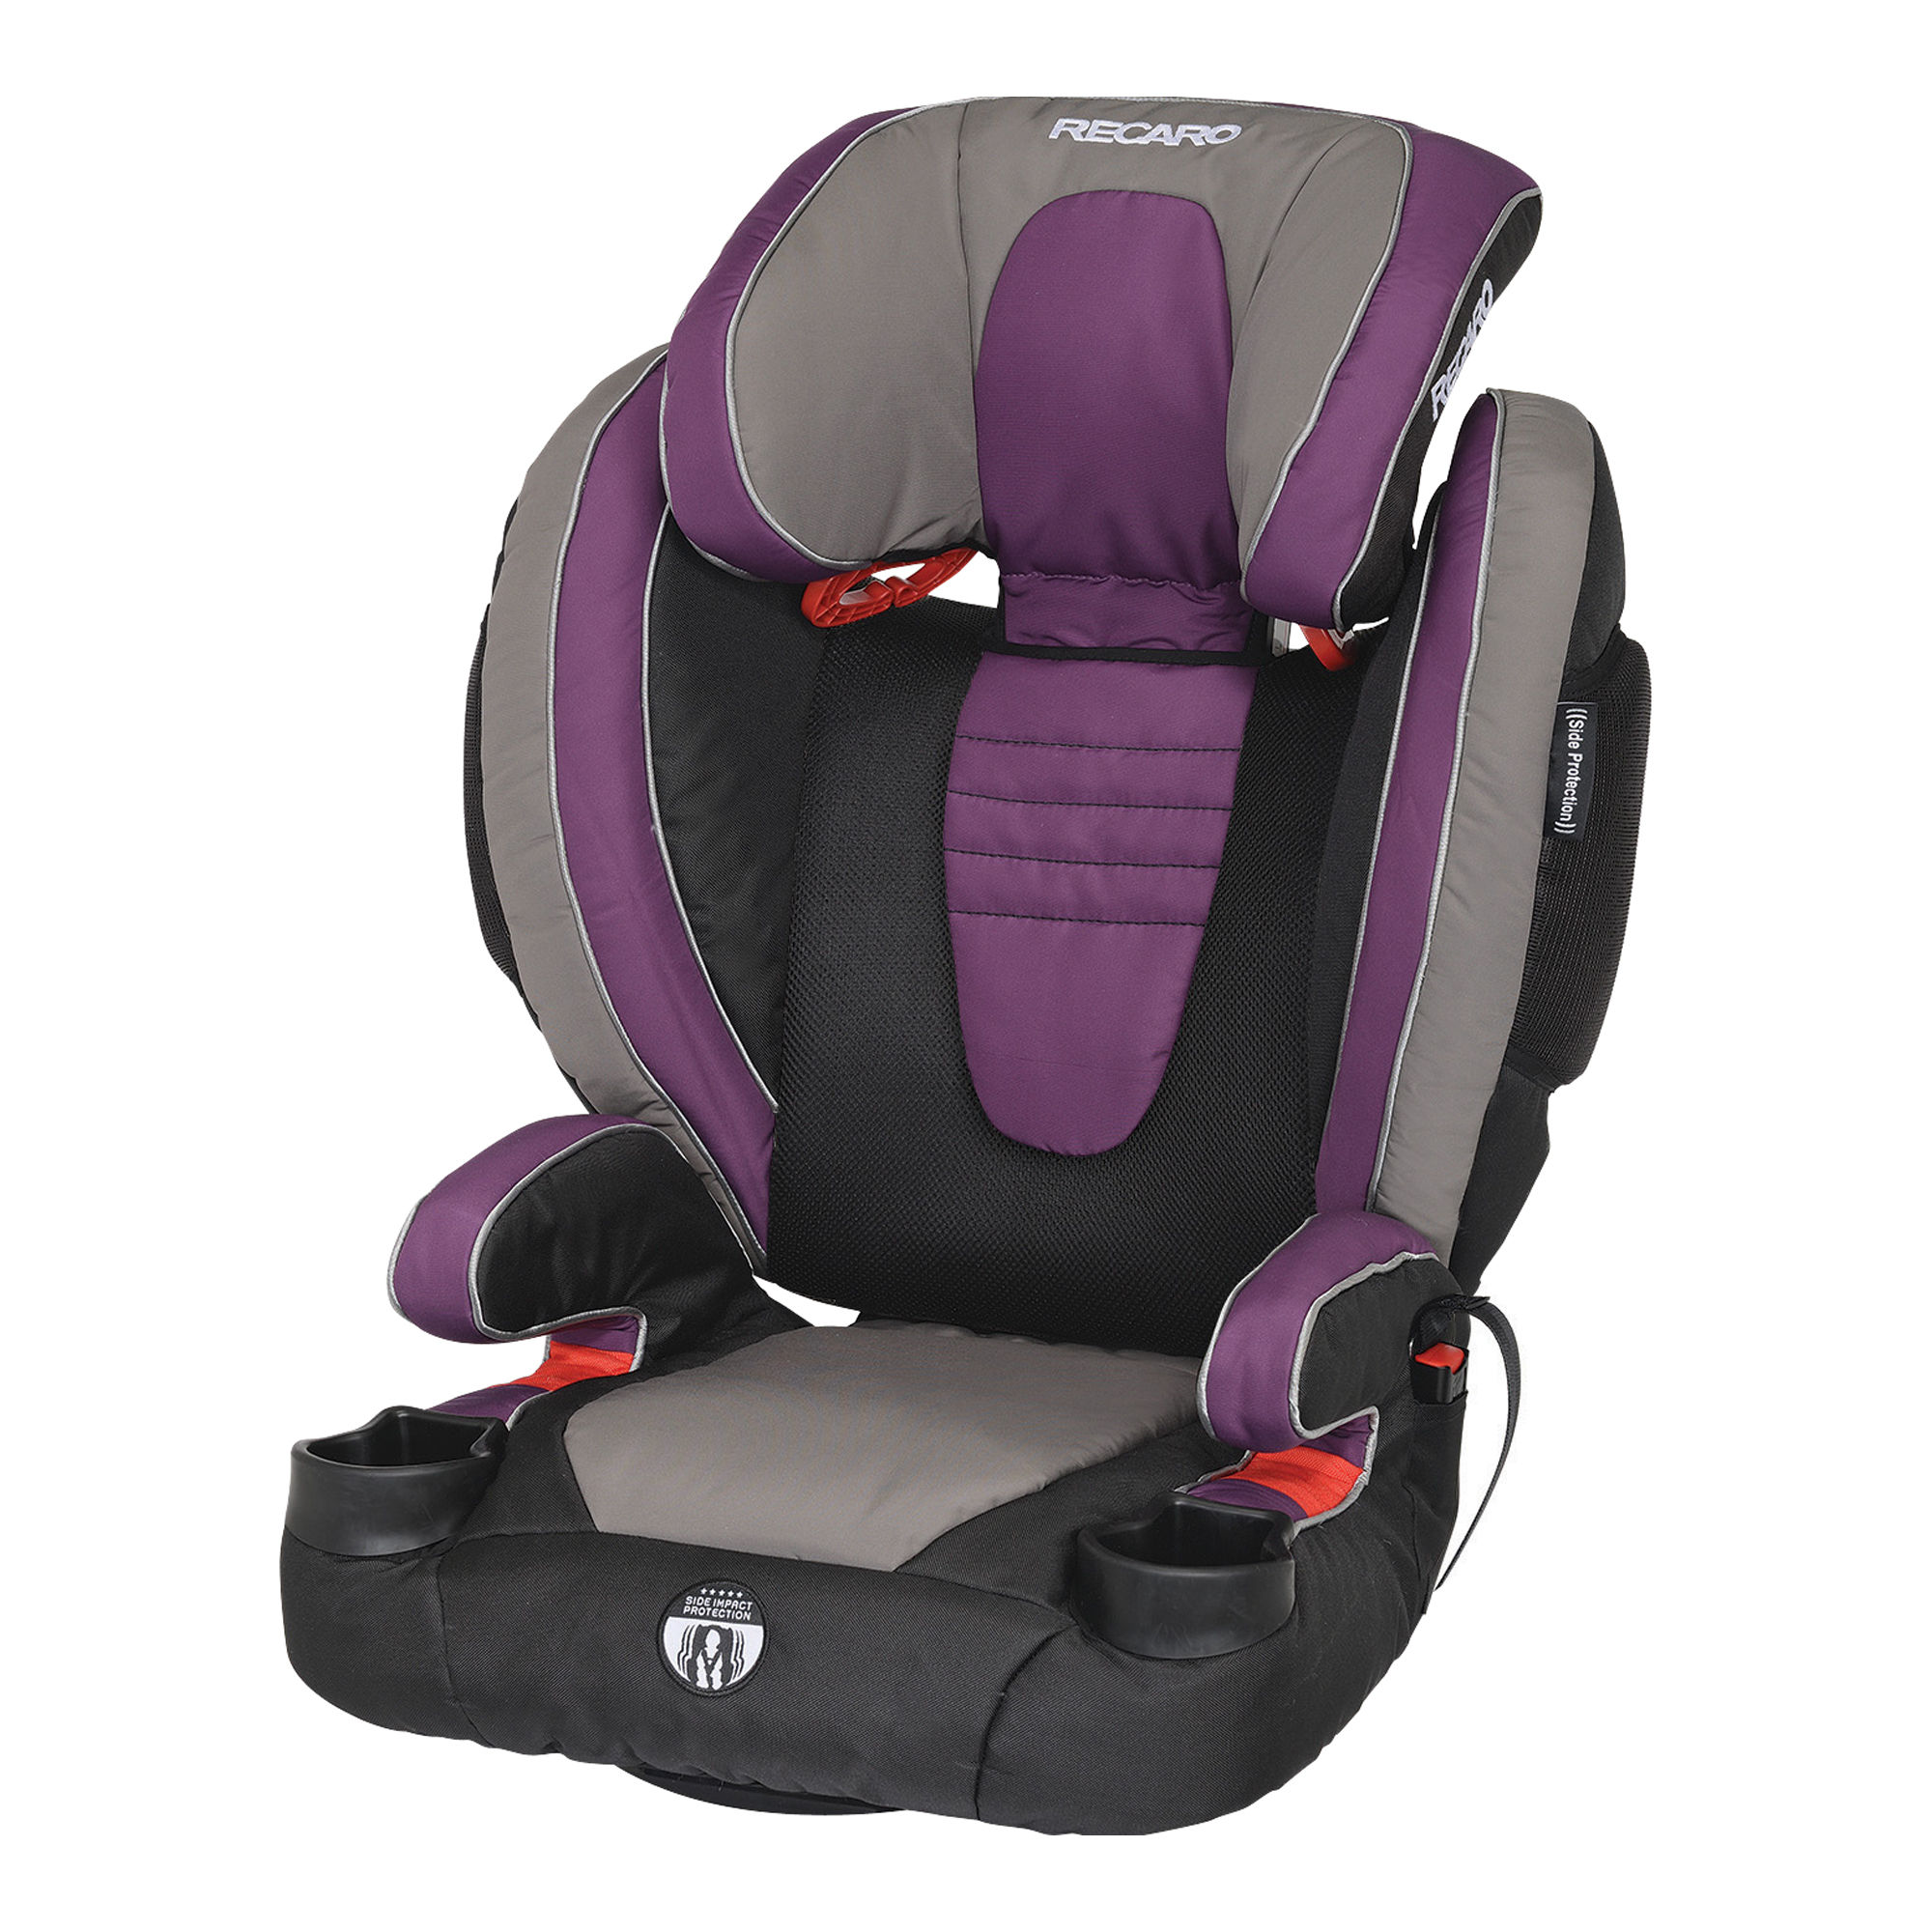 Recaro Performance High-Back Booster Car Seat - Plum